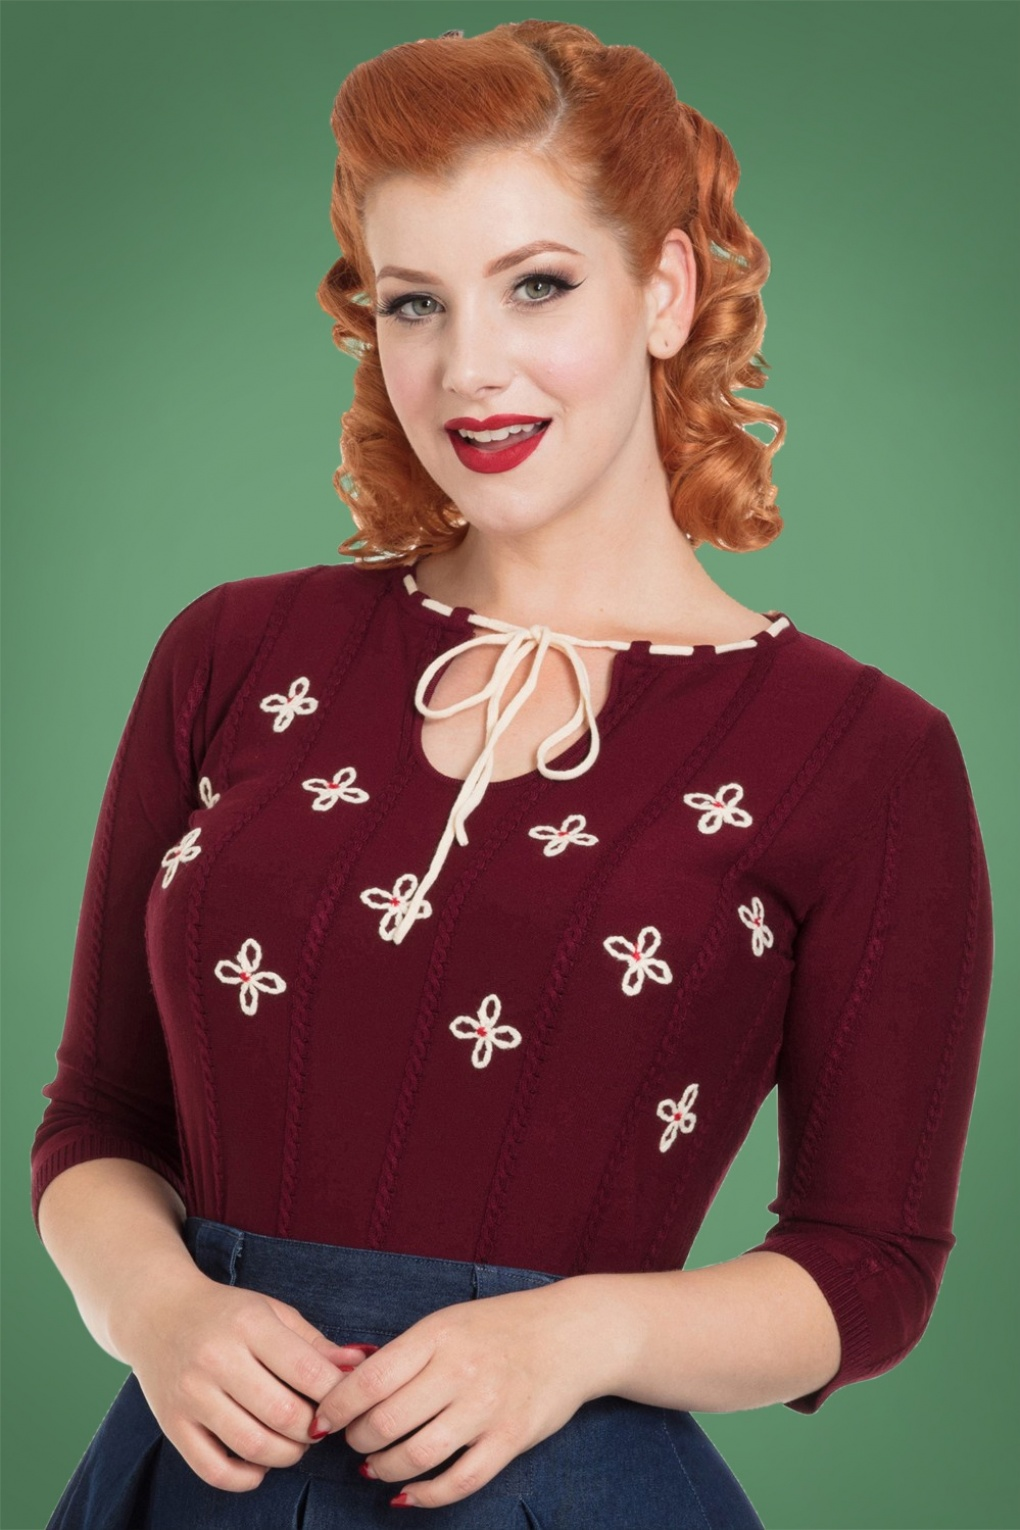 Retro Vintage Sweaters 50s Chloe Floral Sweater in Burgundy £44.08 AT vintagedancer.com